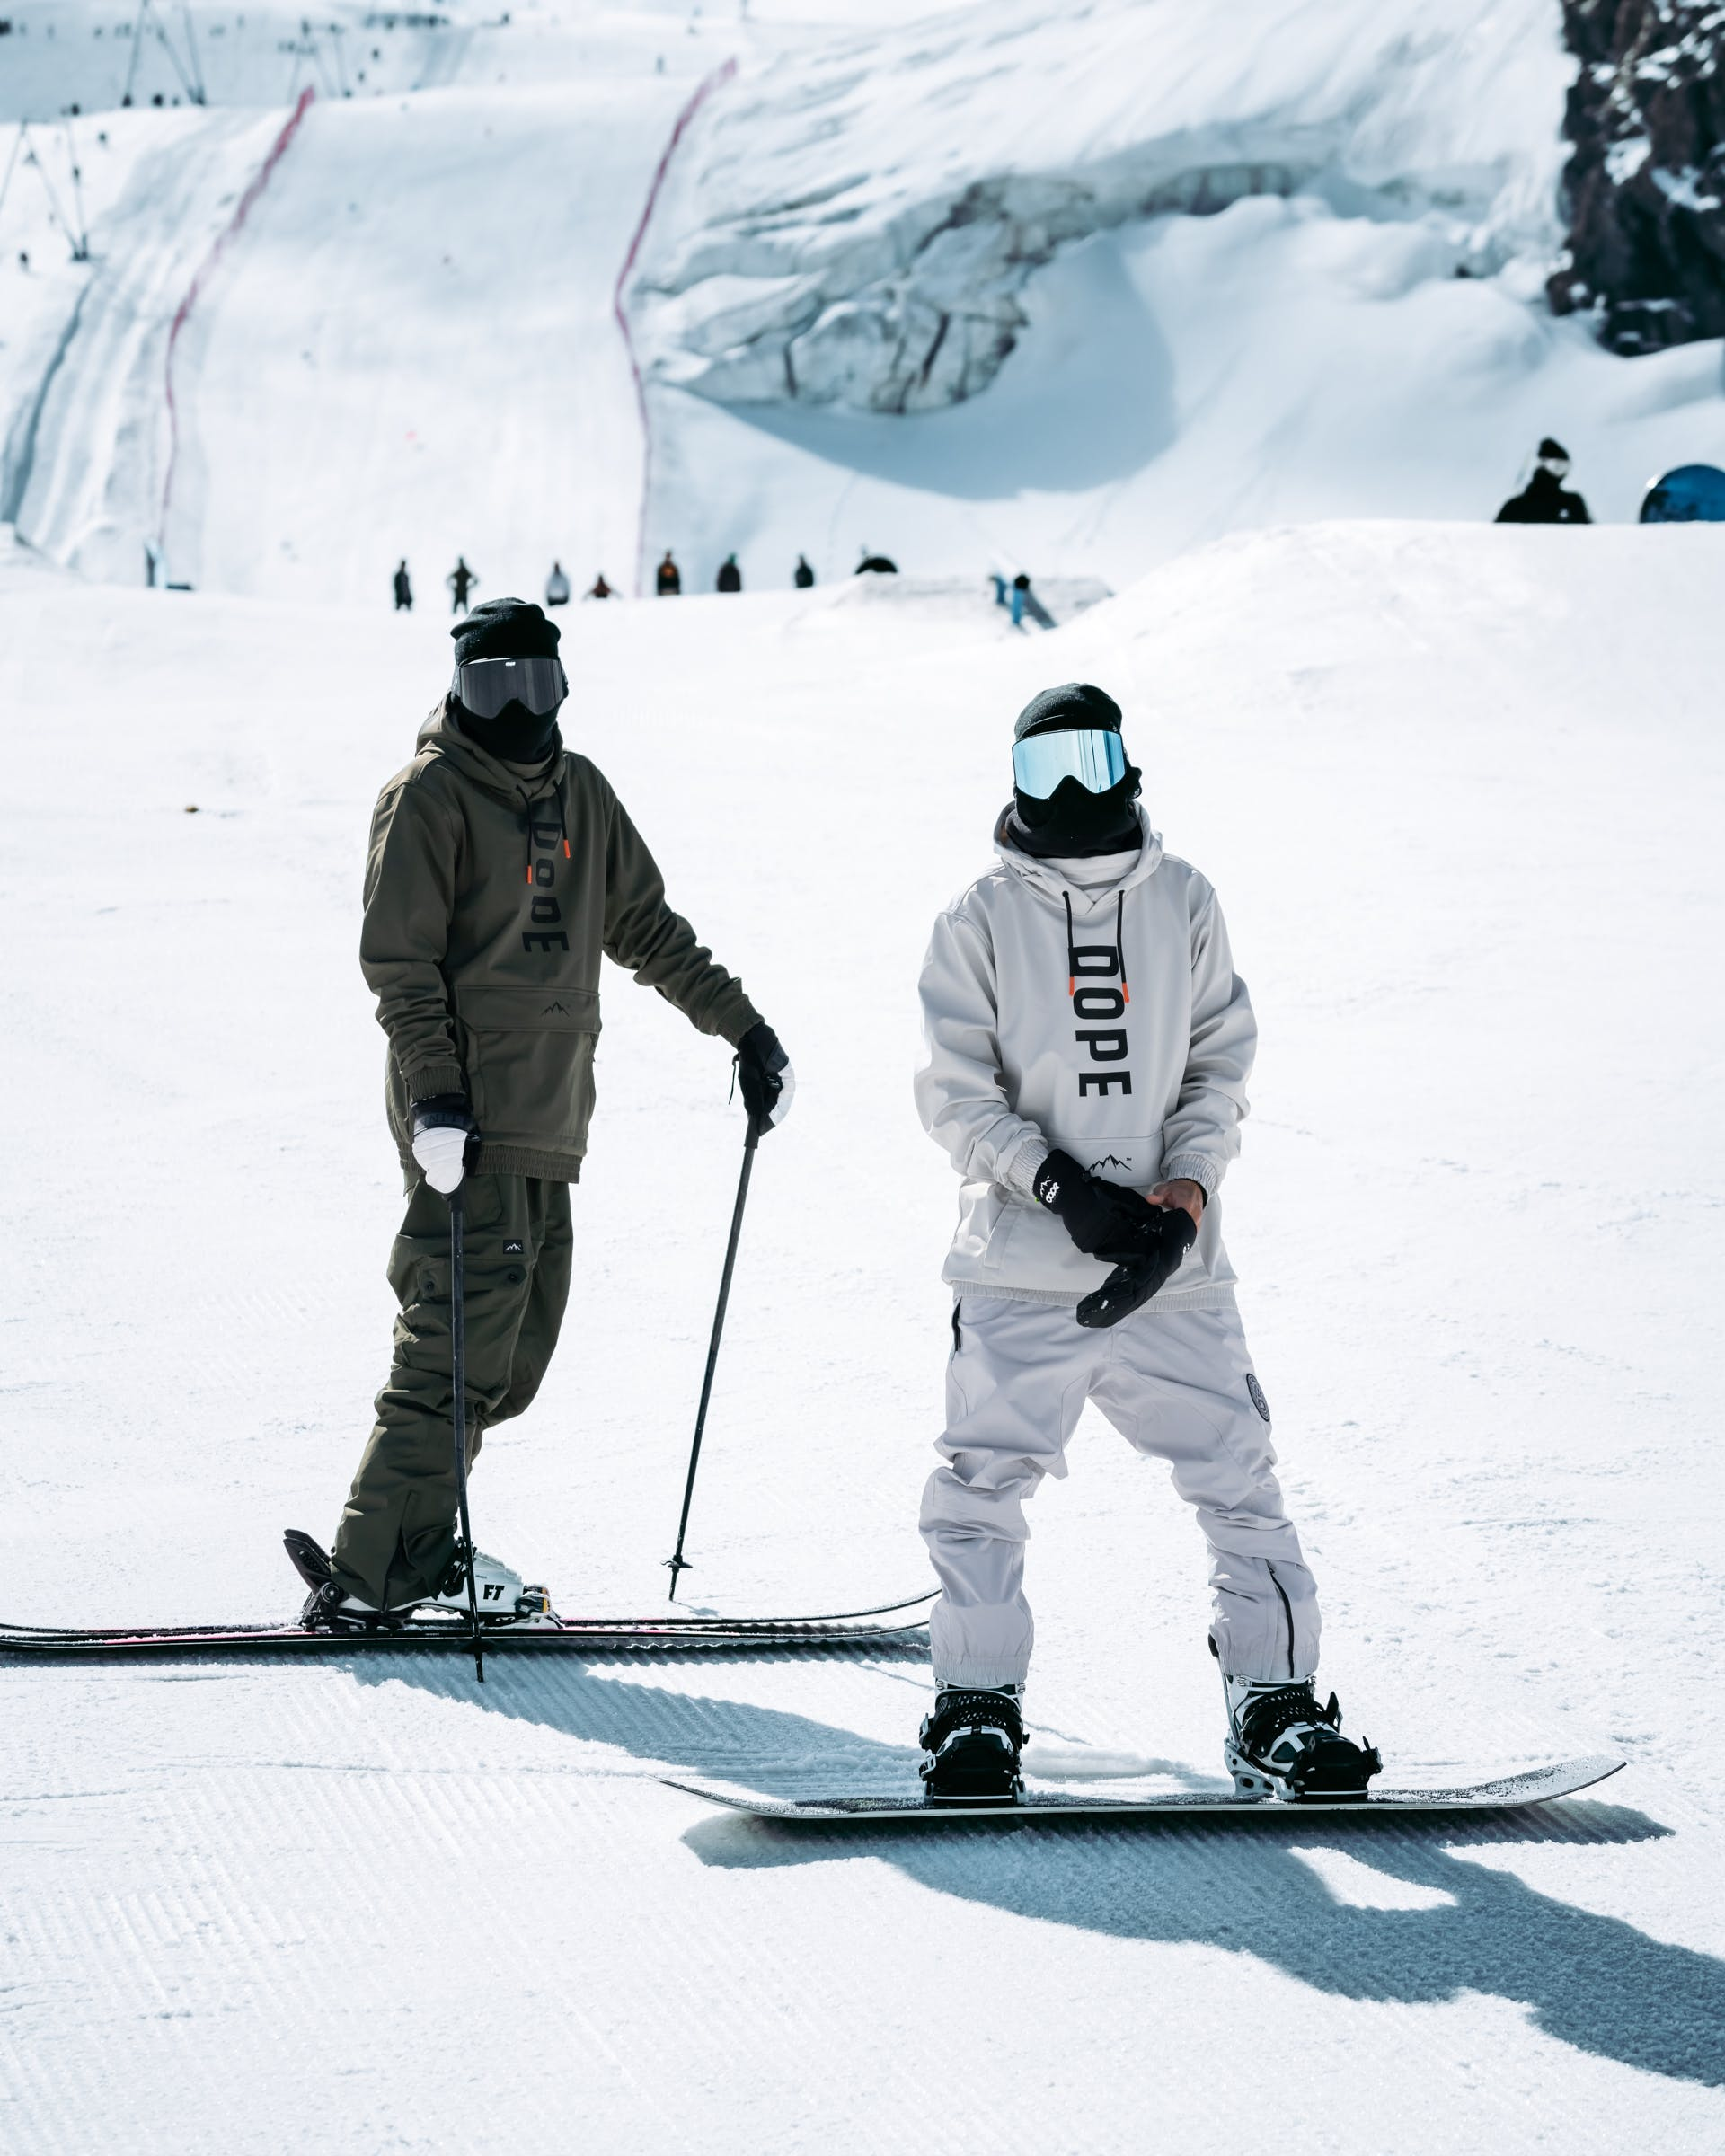 Difference between snowboard clothing and ski clothing styles